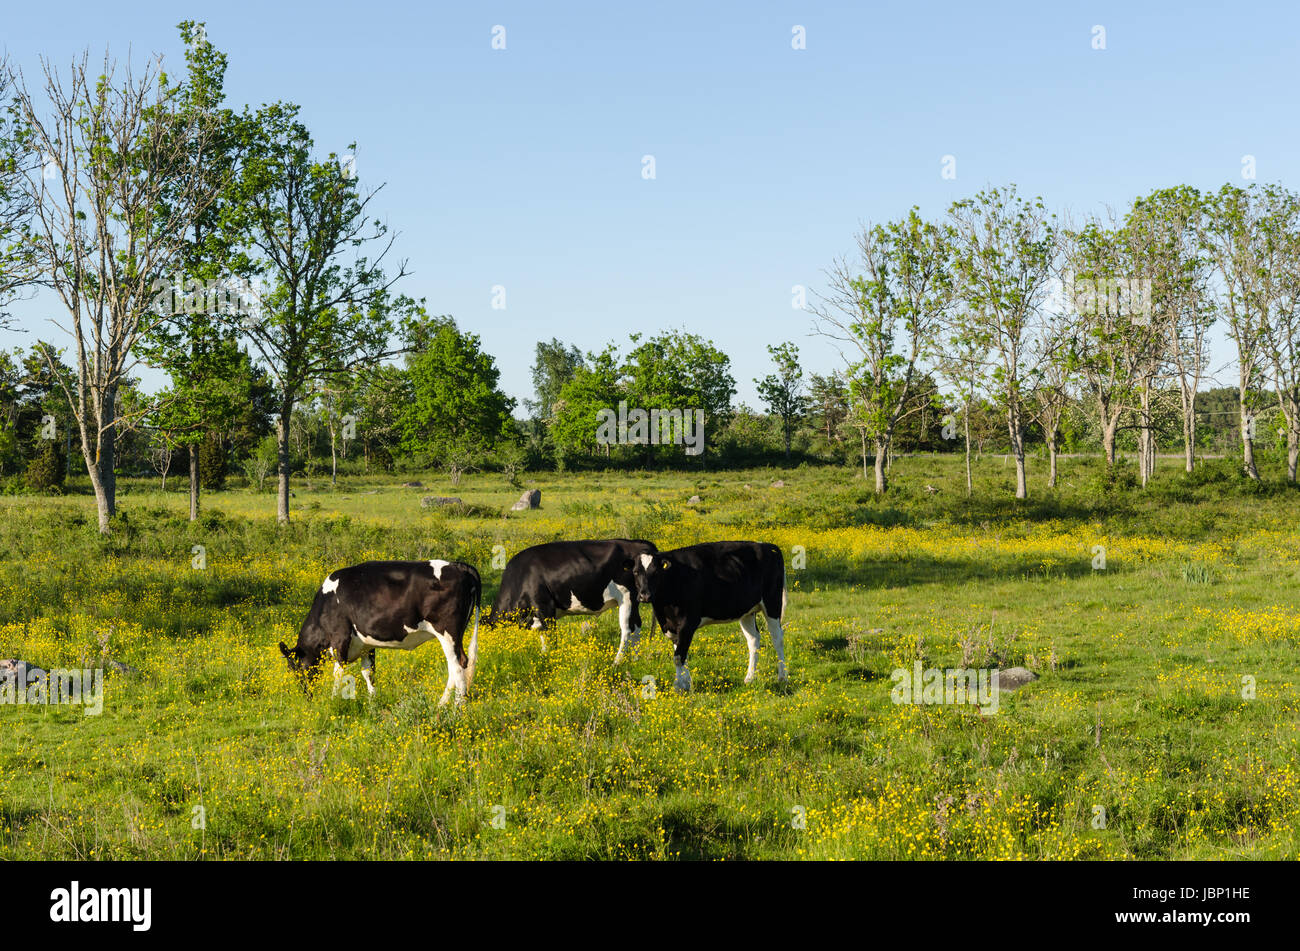 Young cows grazing in a green and yellow pastureland - Stock Image